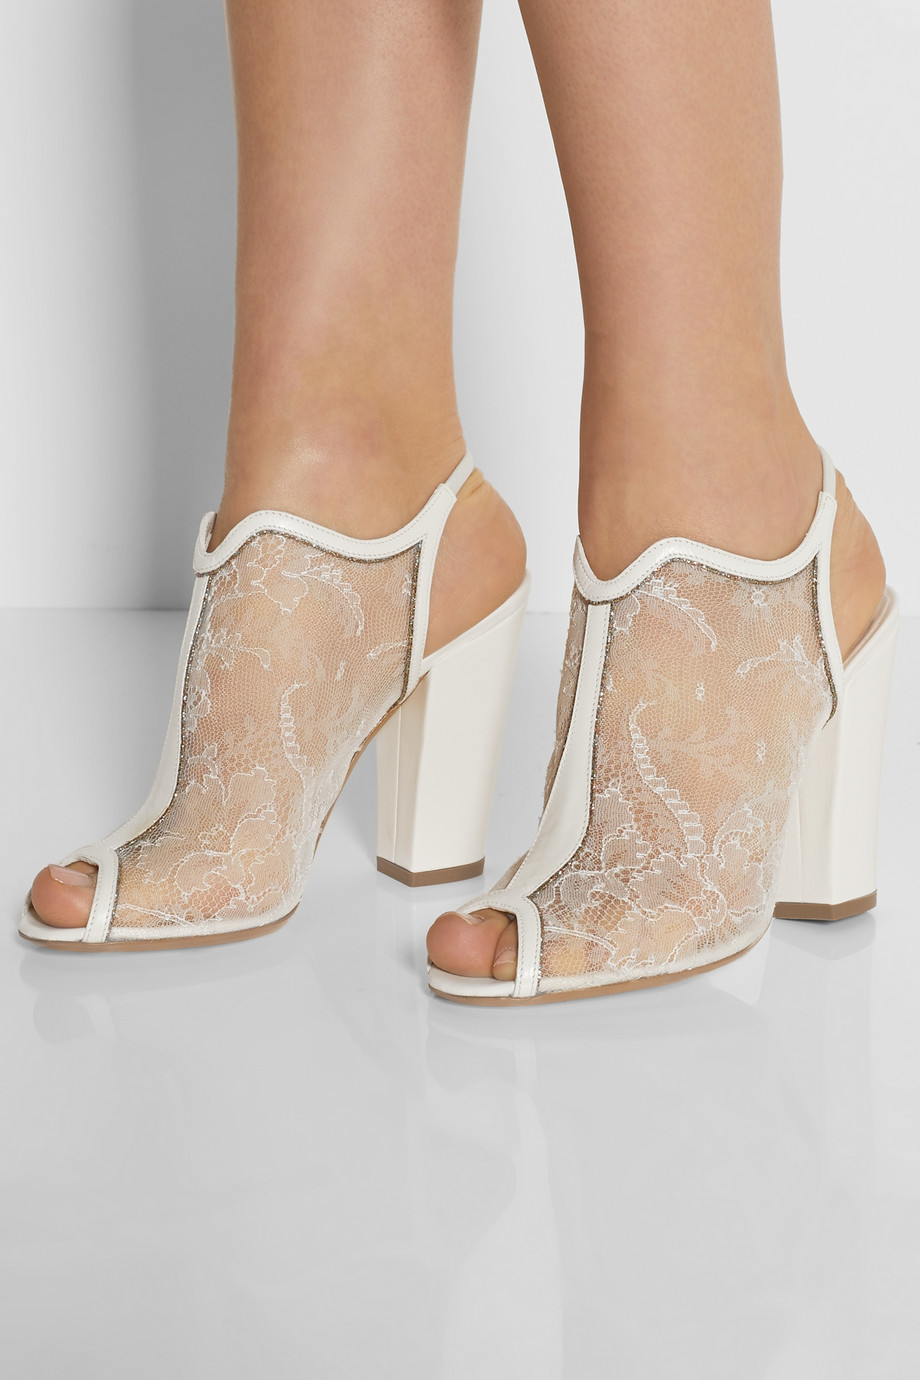 Nicholas Kirkwood White Leather Lace and Glitter Sandals bridal shoe couture designer